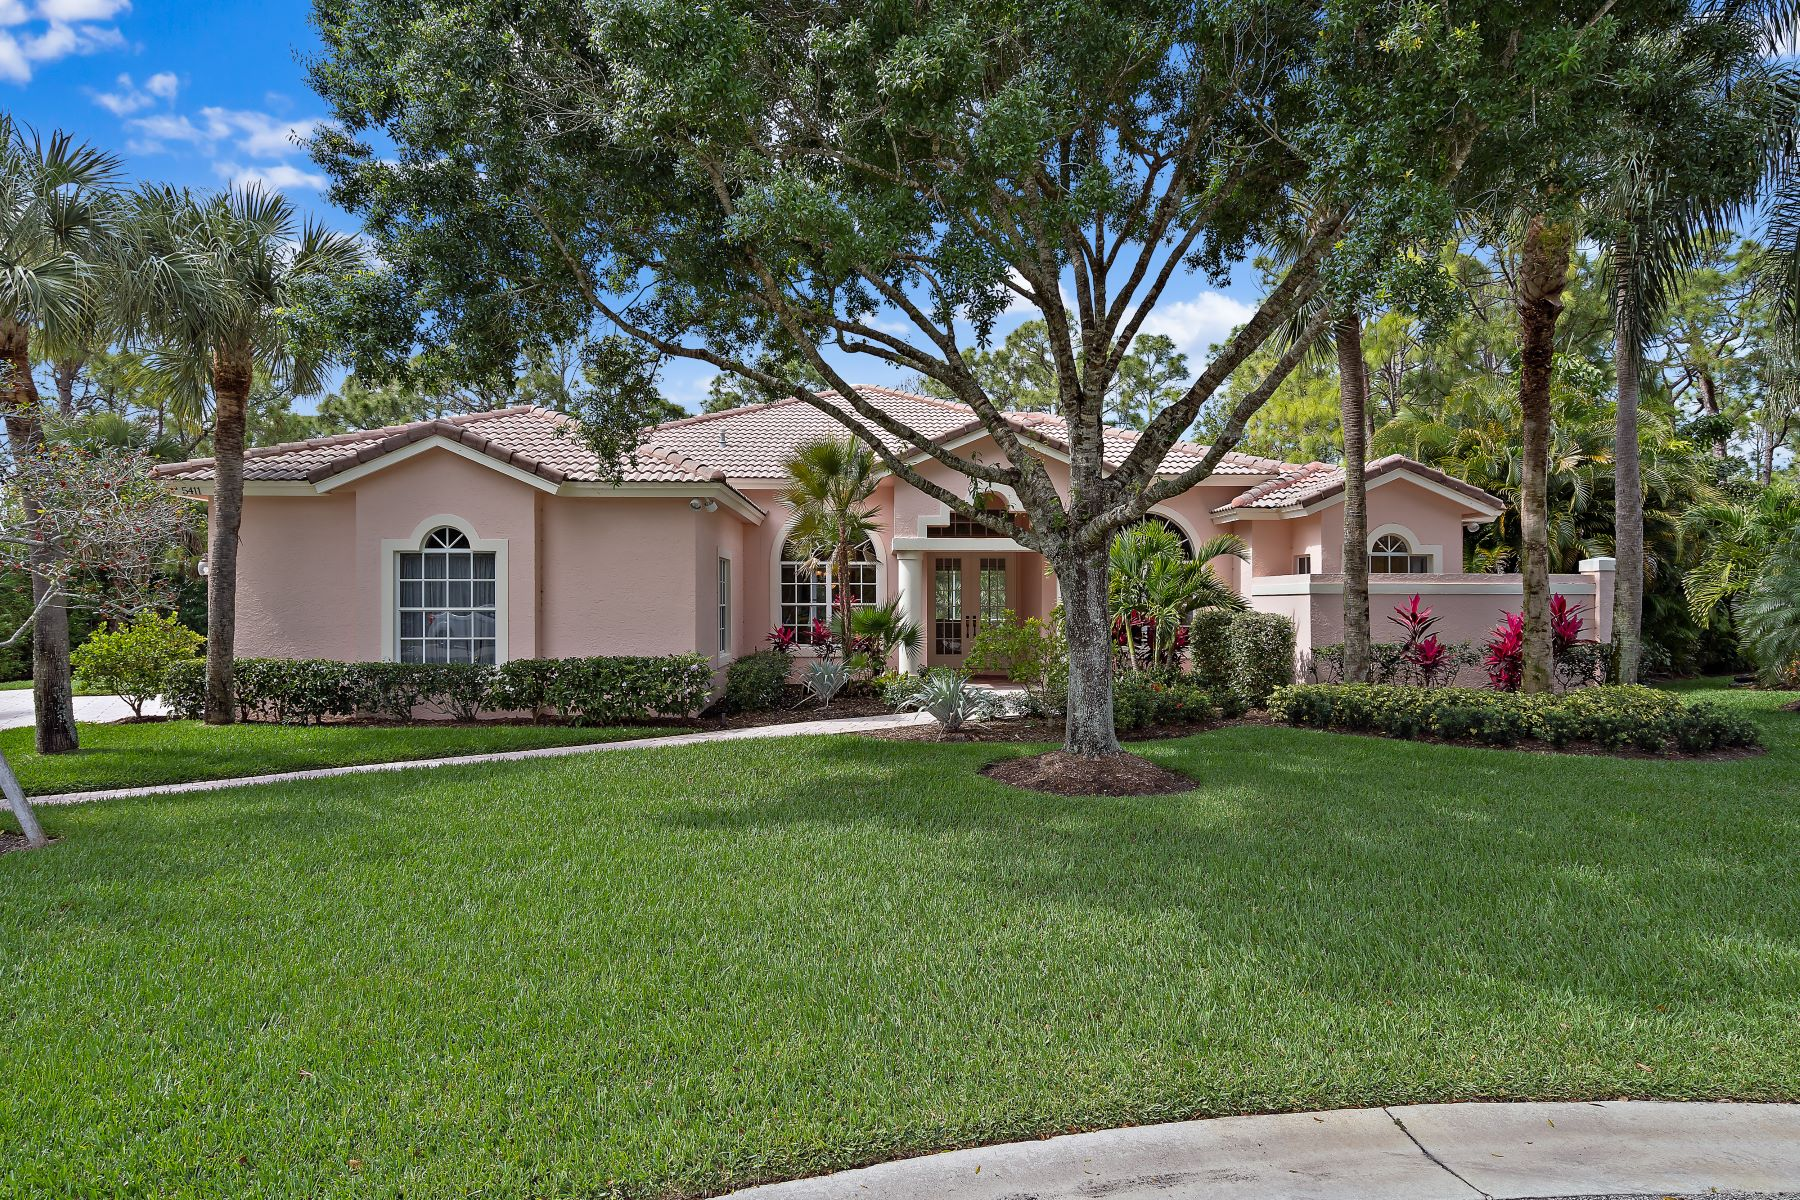 Single Family Homes for Active at 5411 Se Serenoa Terrace Hobe Sound, Florida 33455 United States